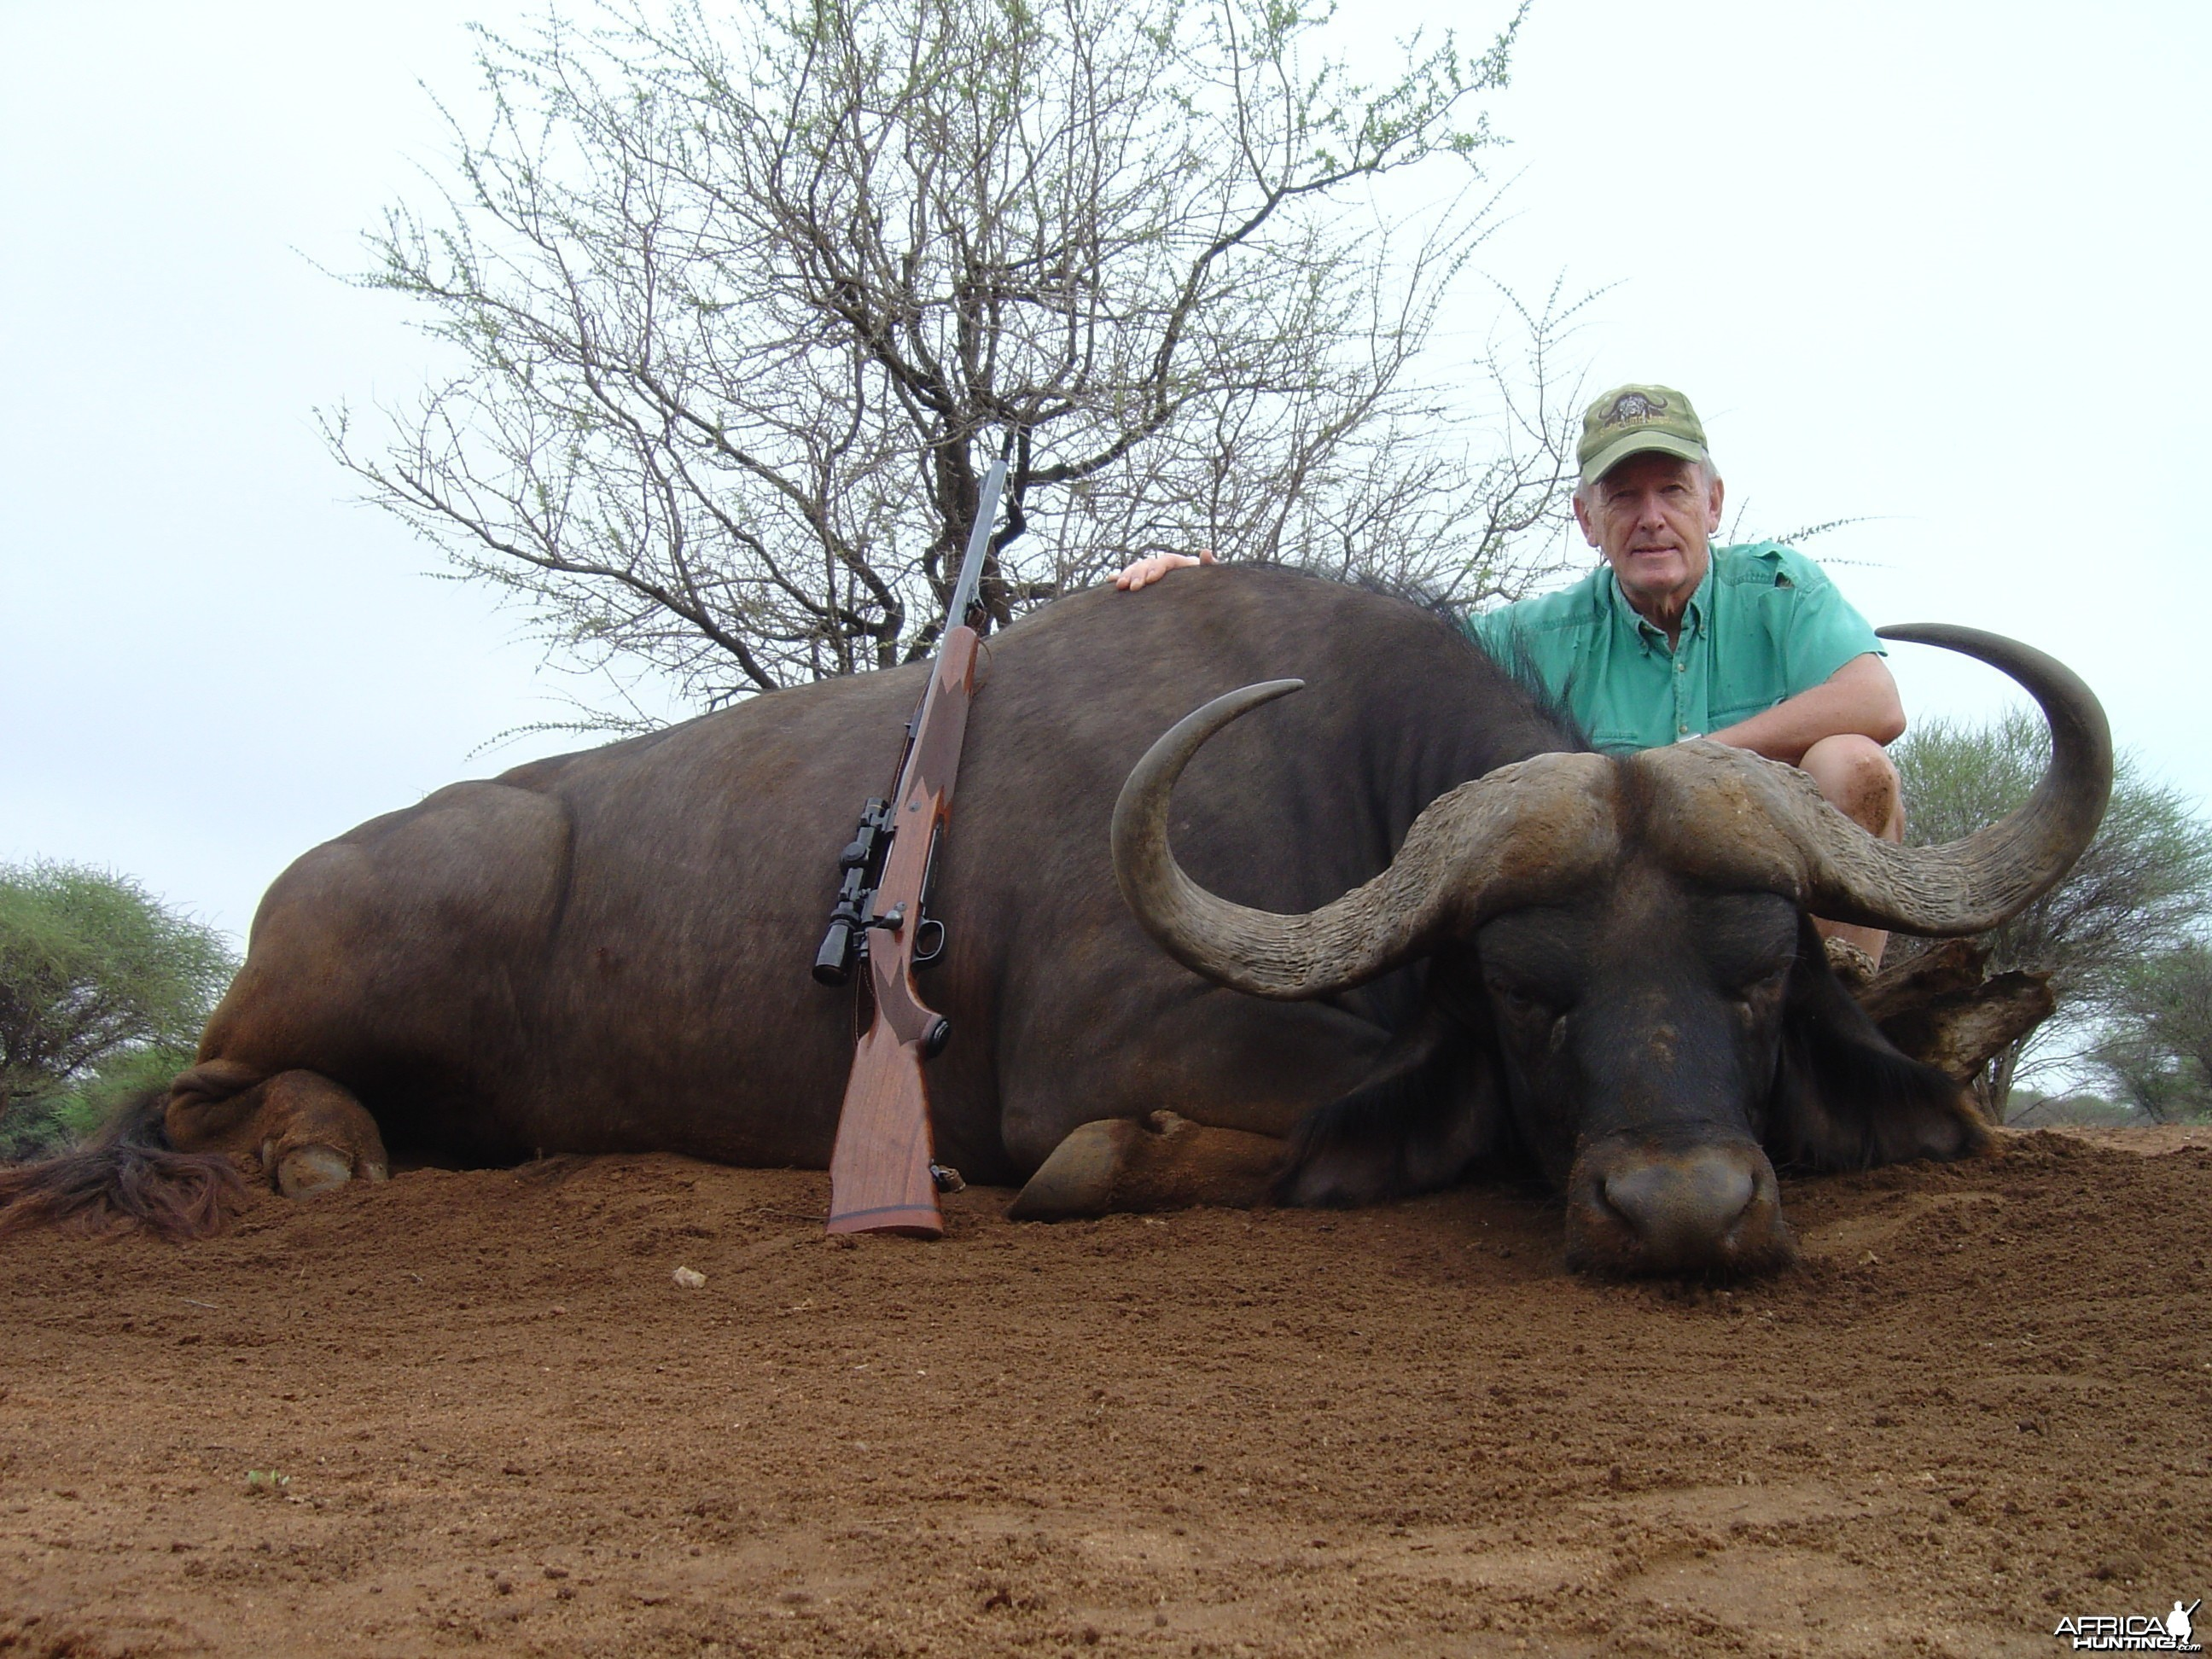 Cape Buffalo hunted in South Africa